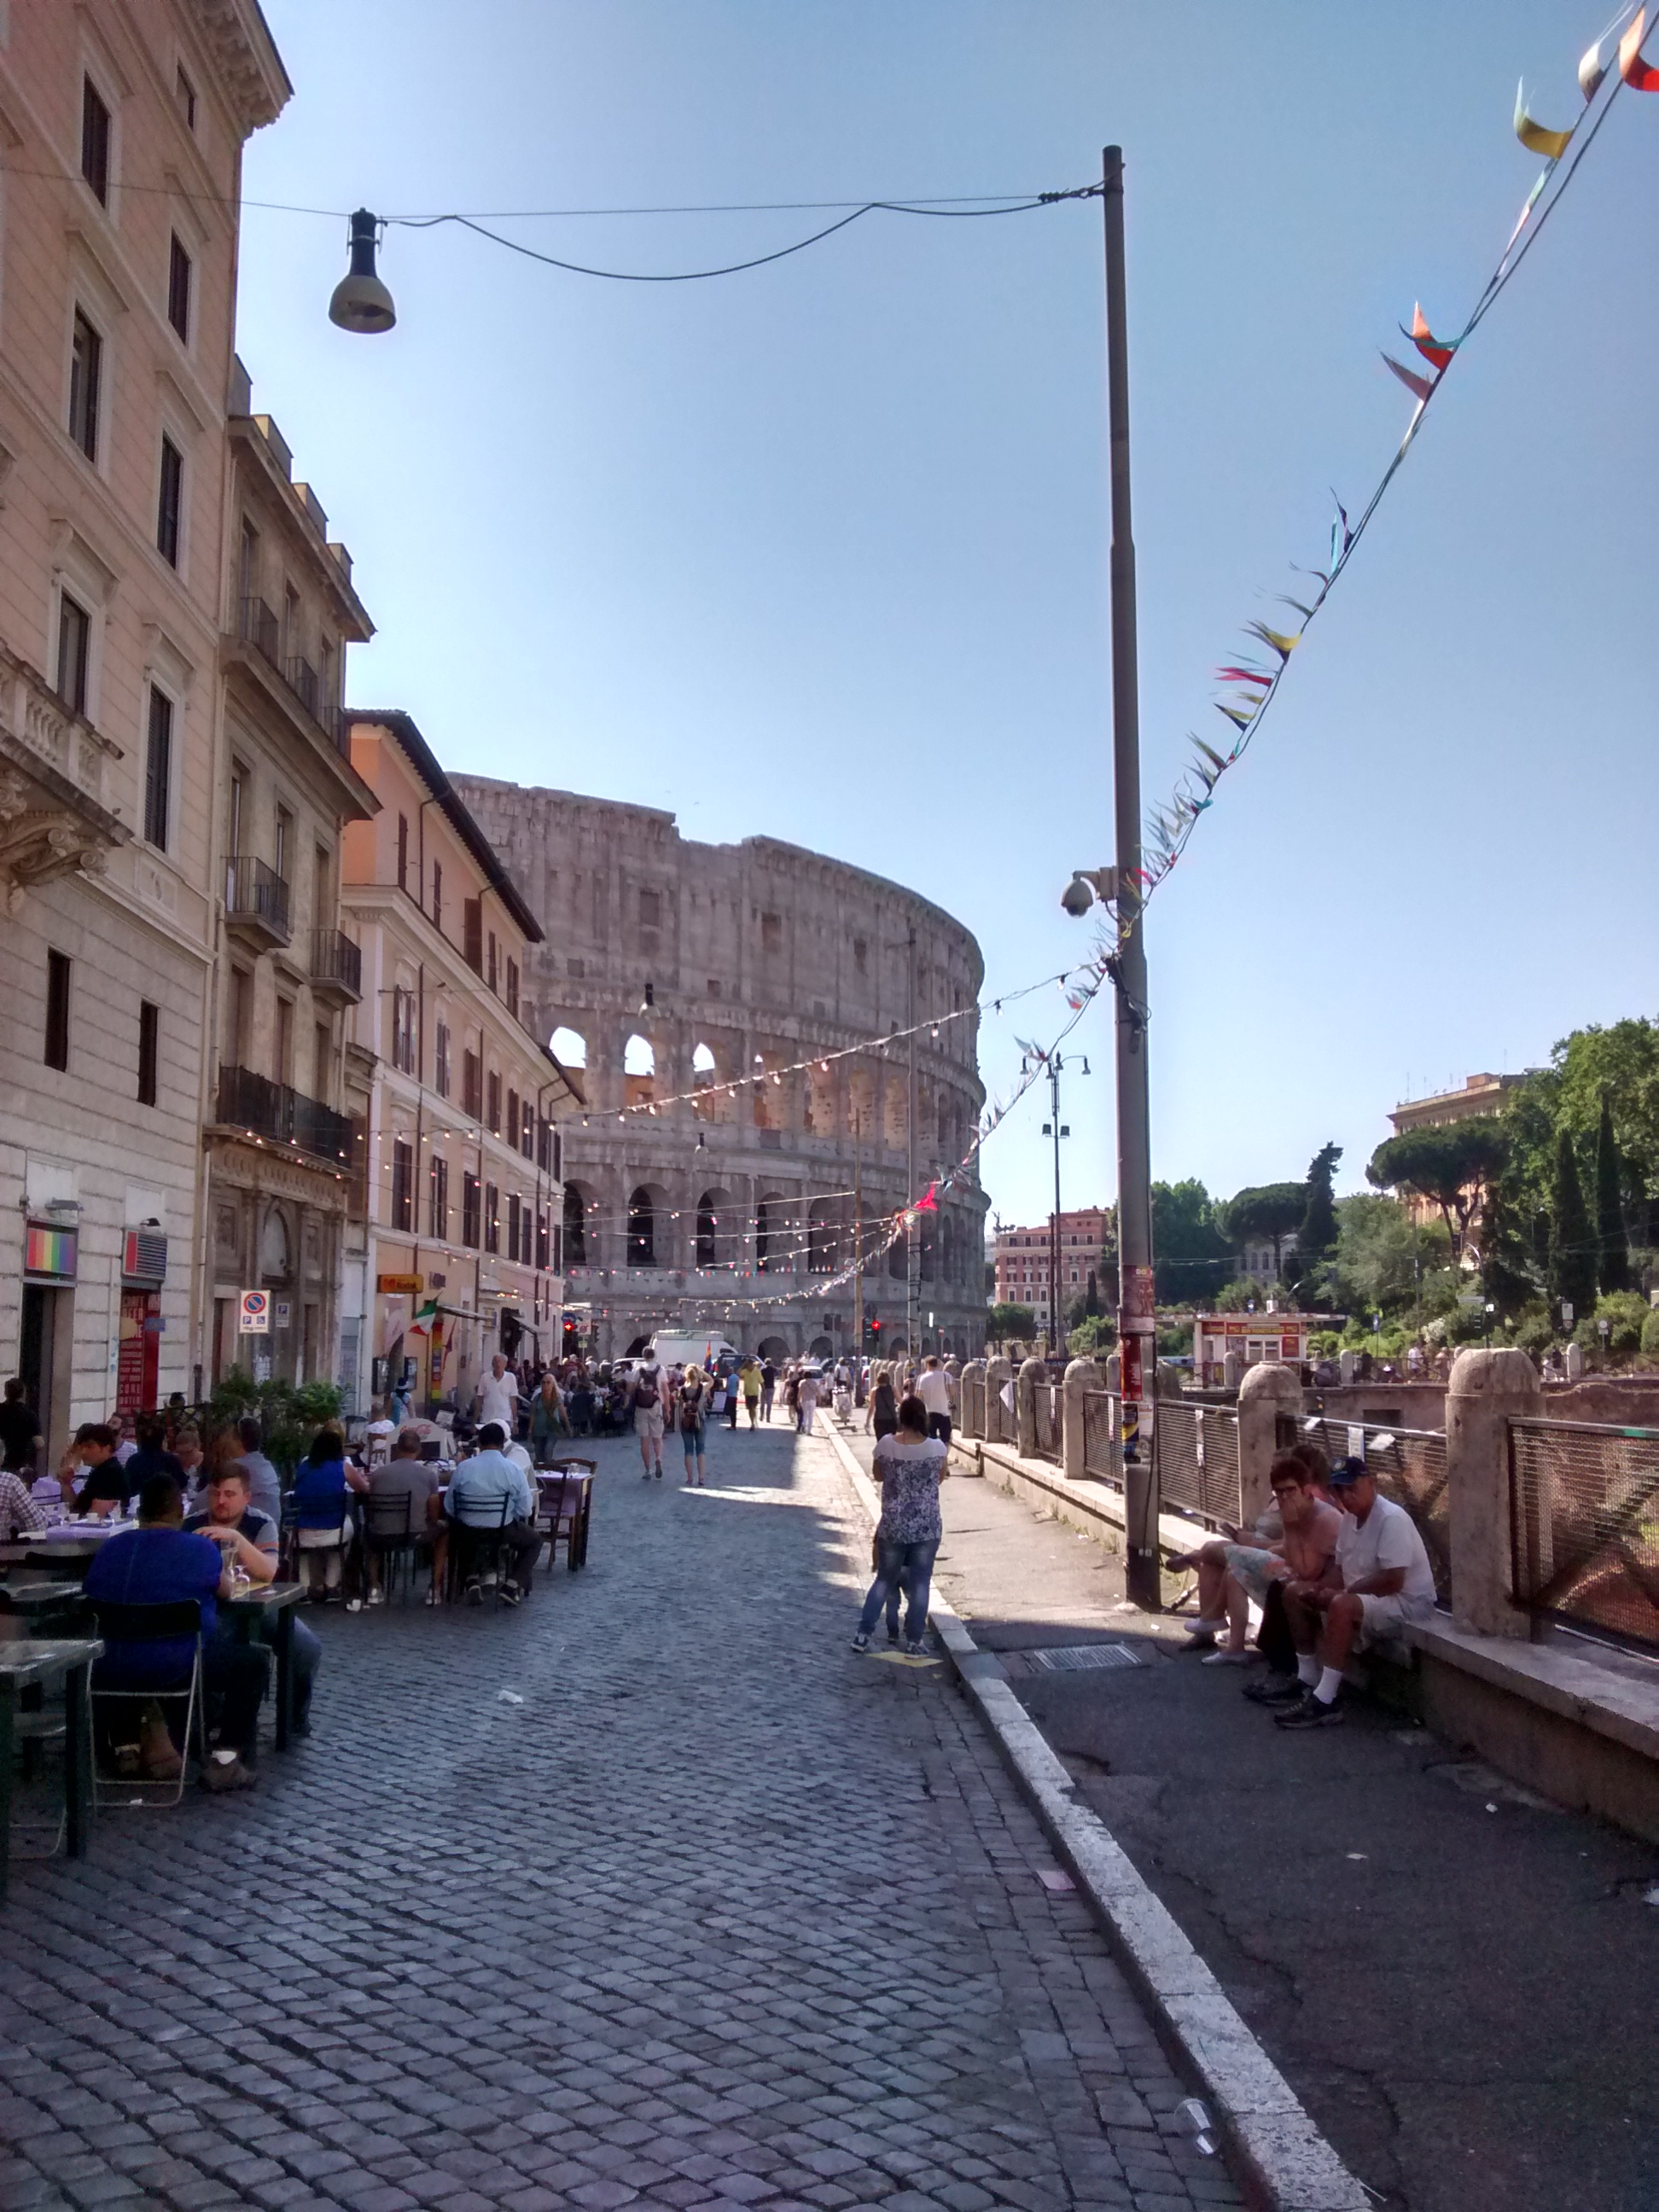 holder of this work, hereby publish it under the following license: English Gay Street, Rome, and Colosseum Wikimedia username: Mr. Granger object has role: